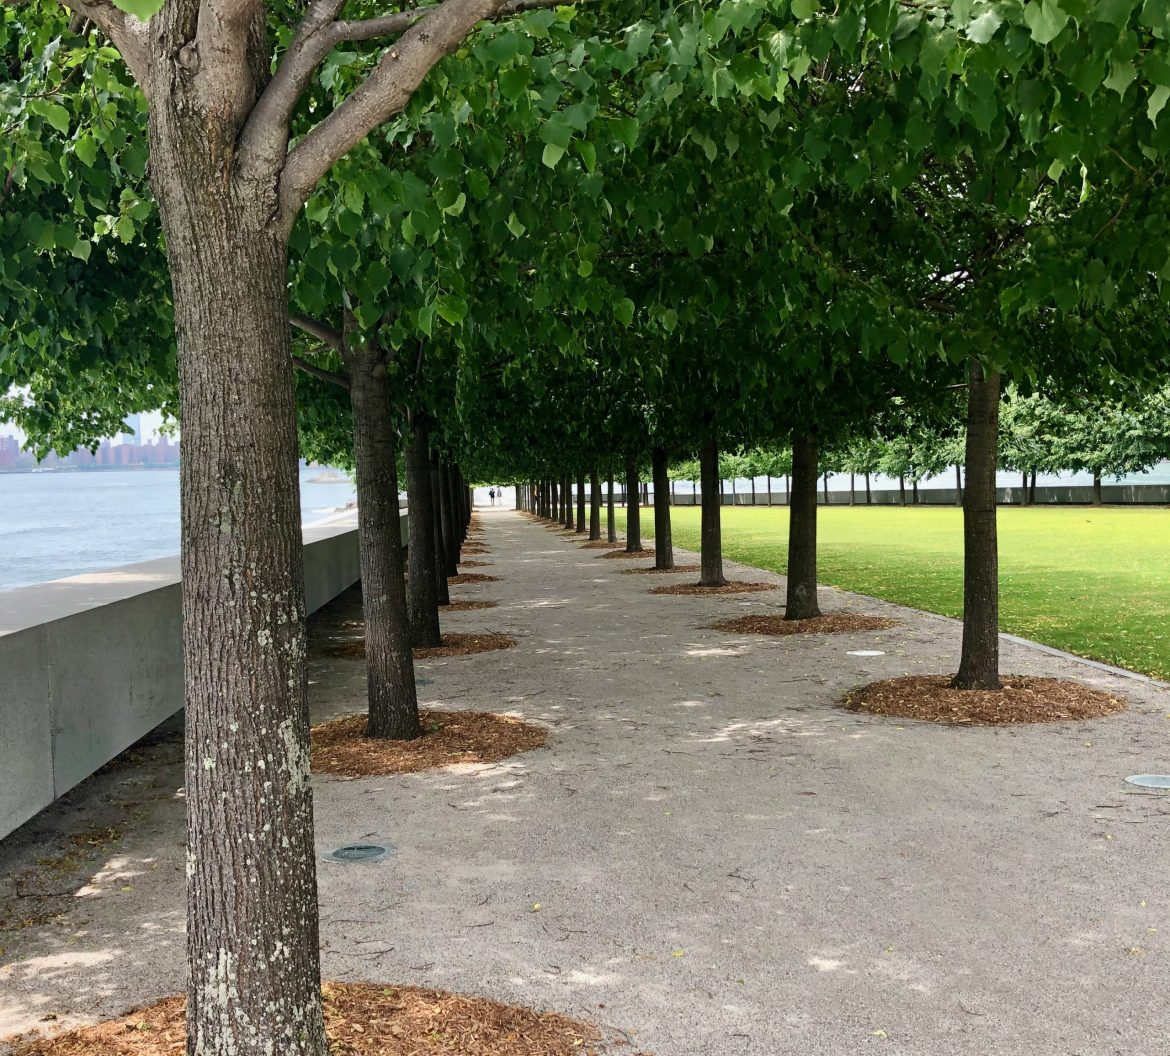 In a big win for Four Freedoms Park, Conservancy gets $35K for QR-sourced, self-guided tours